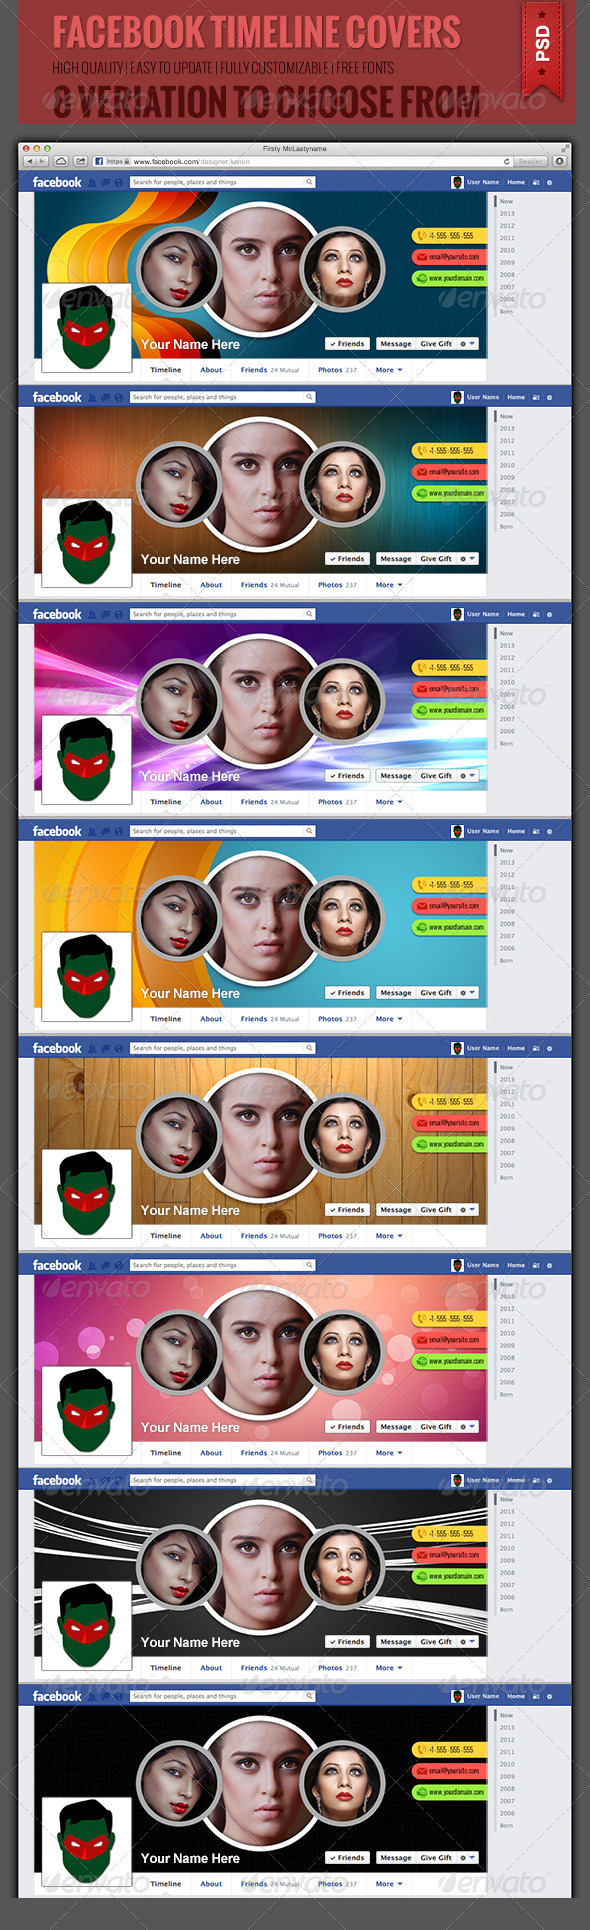 Facebook Timeline Covers - Facebook Timeline Covers Social Media